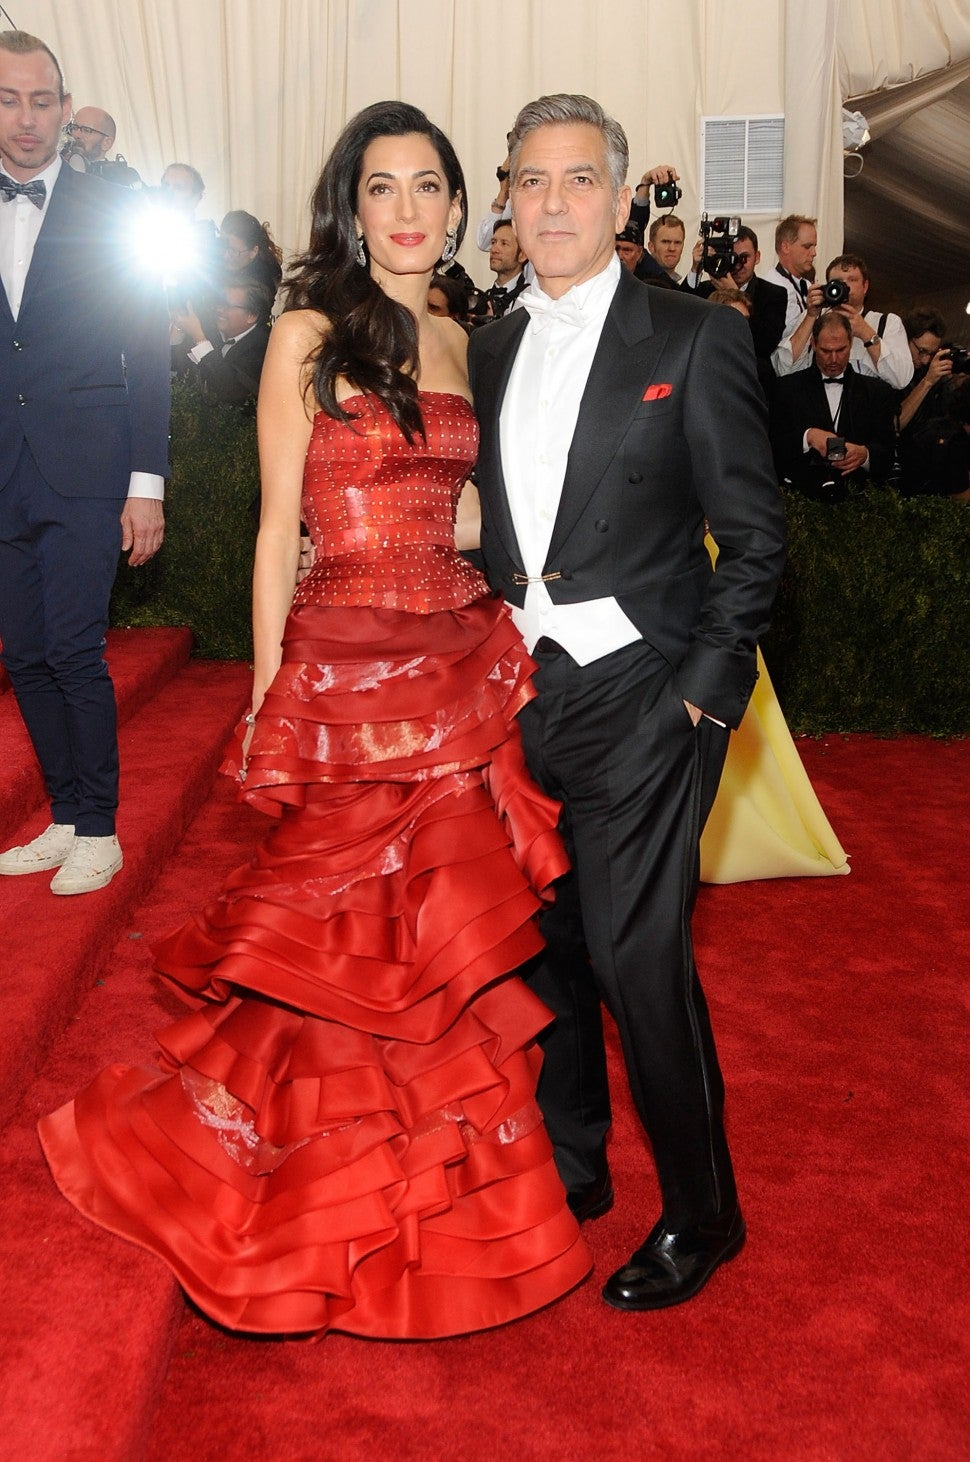 George Clooney and Amal Alamuddin arrives at